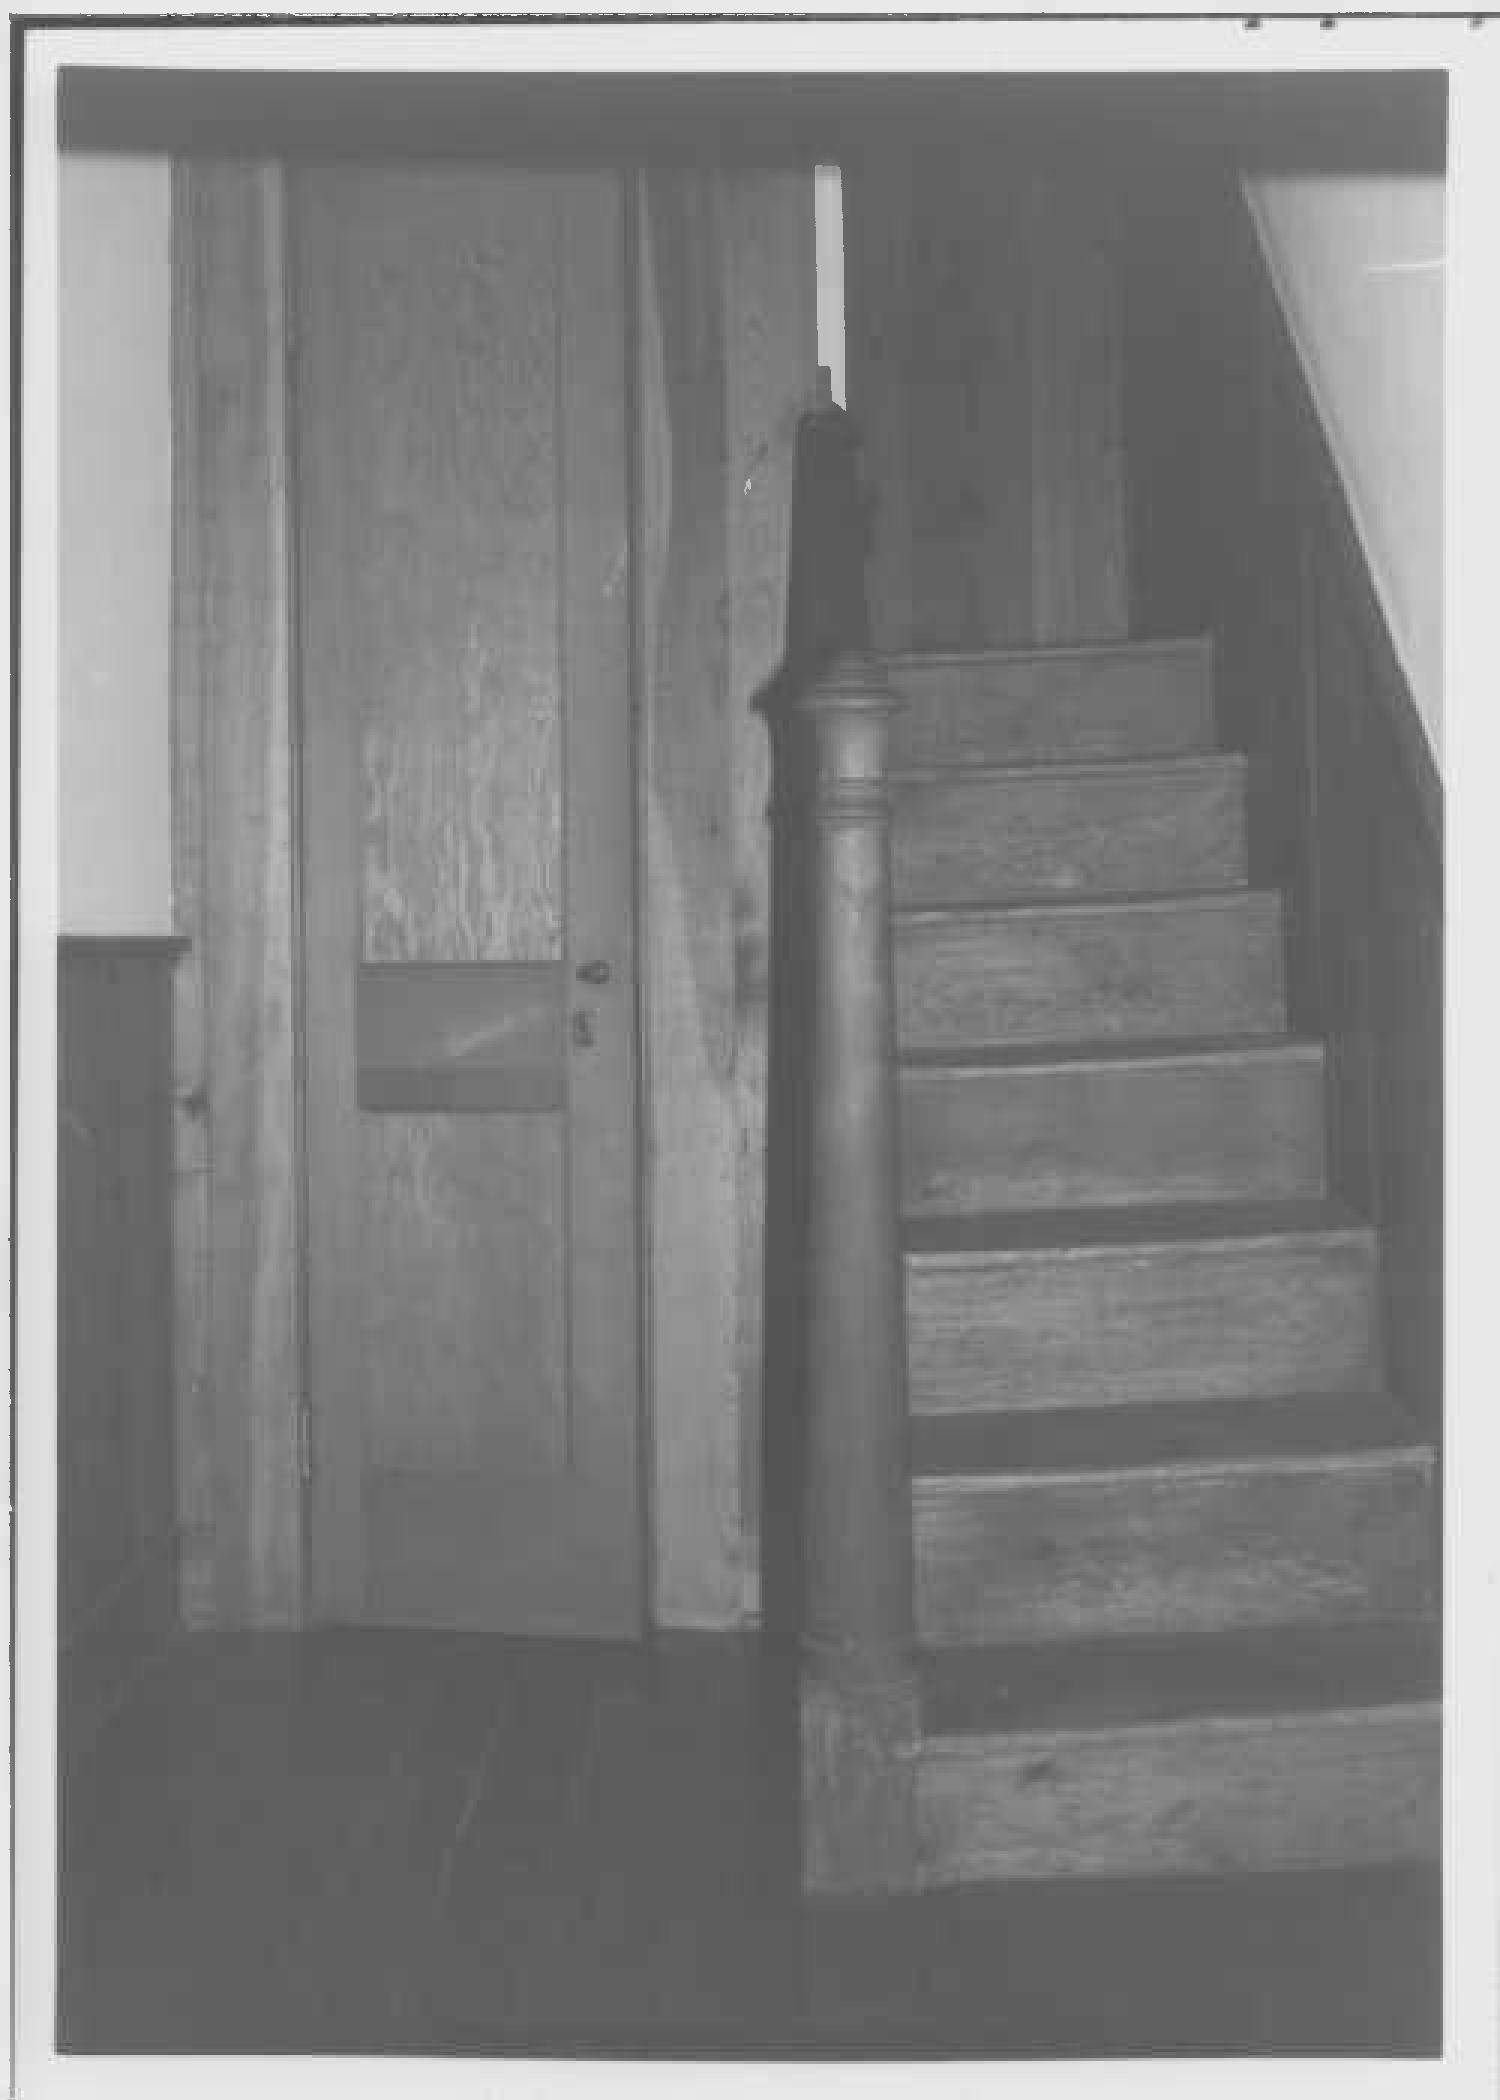 Secondary stair, east wing, Whites Hall in Maryland